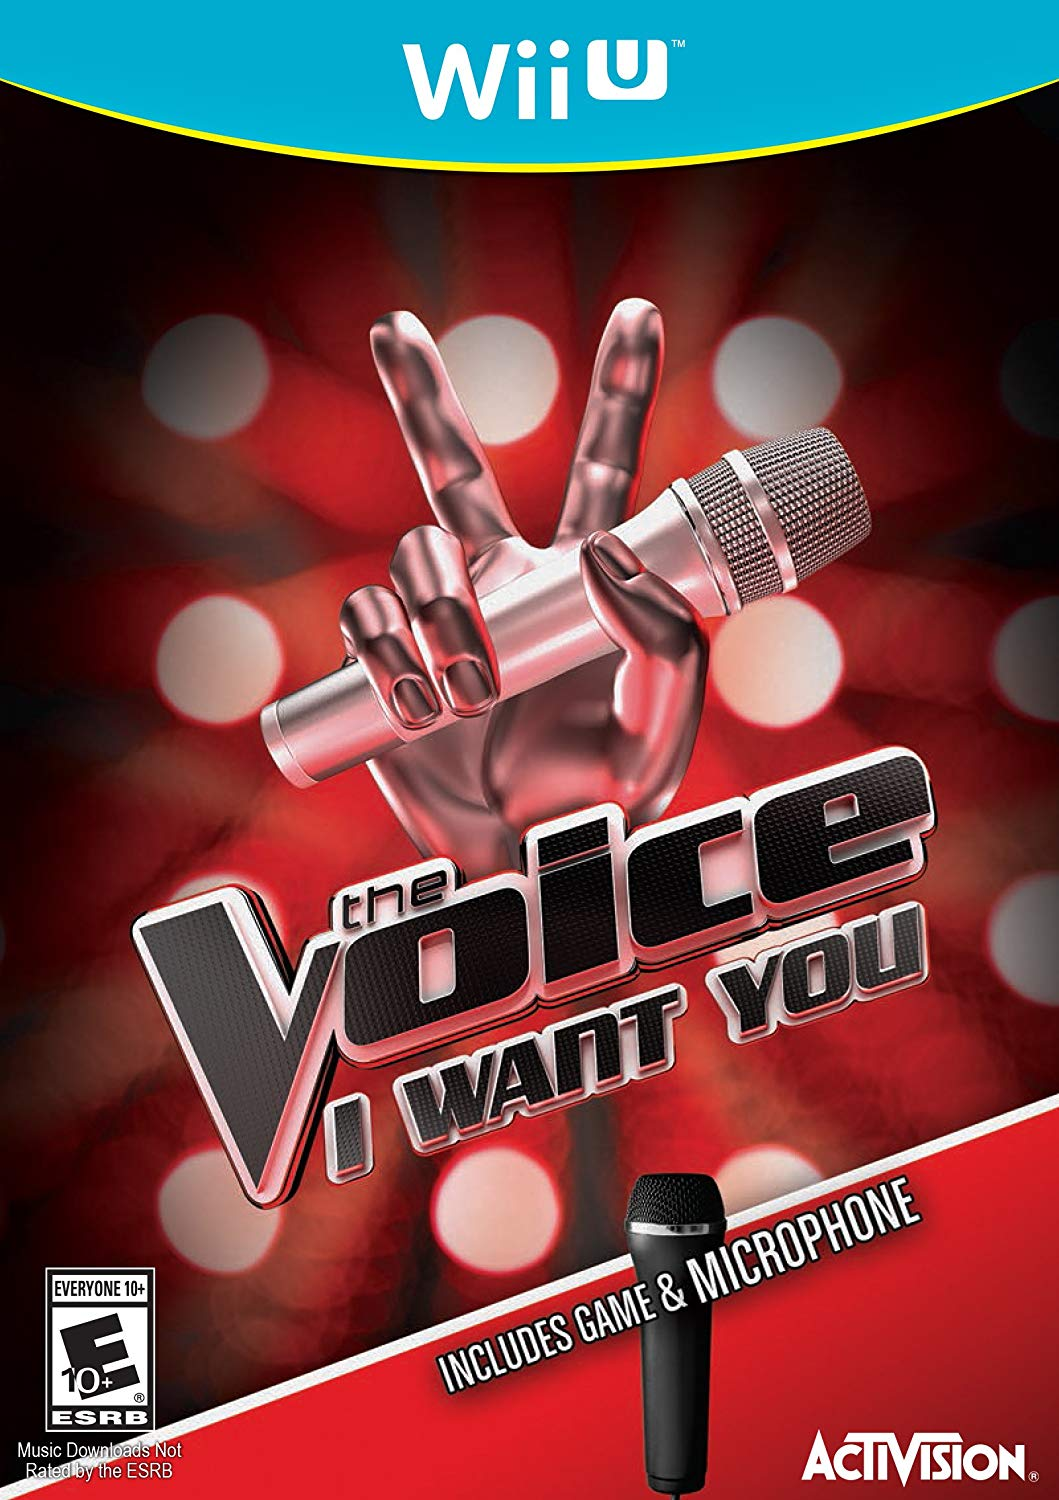 The Voice: I Want You - Wii U